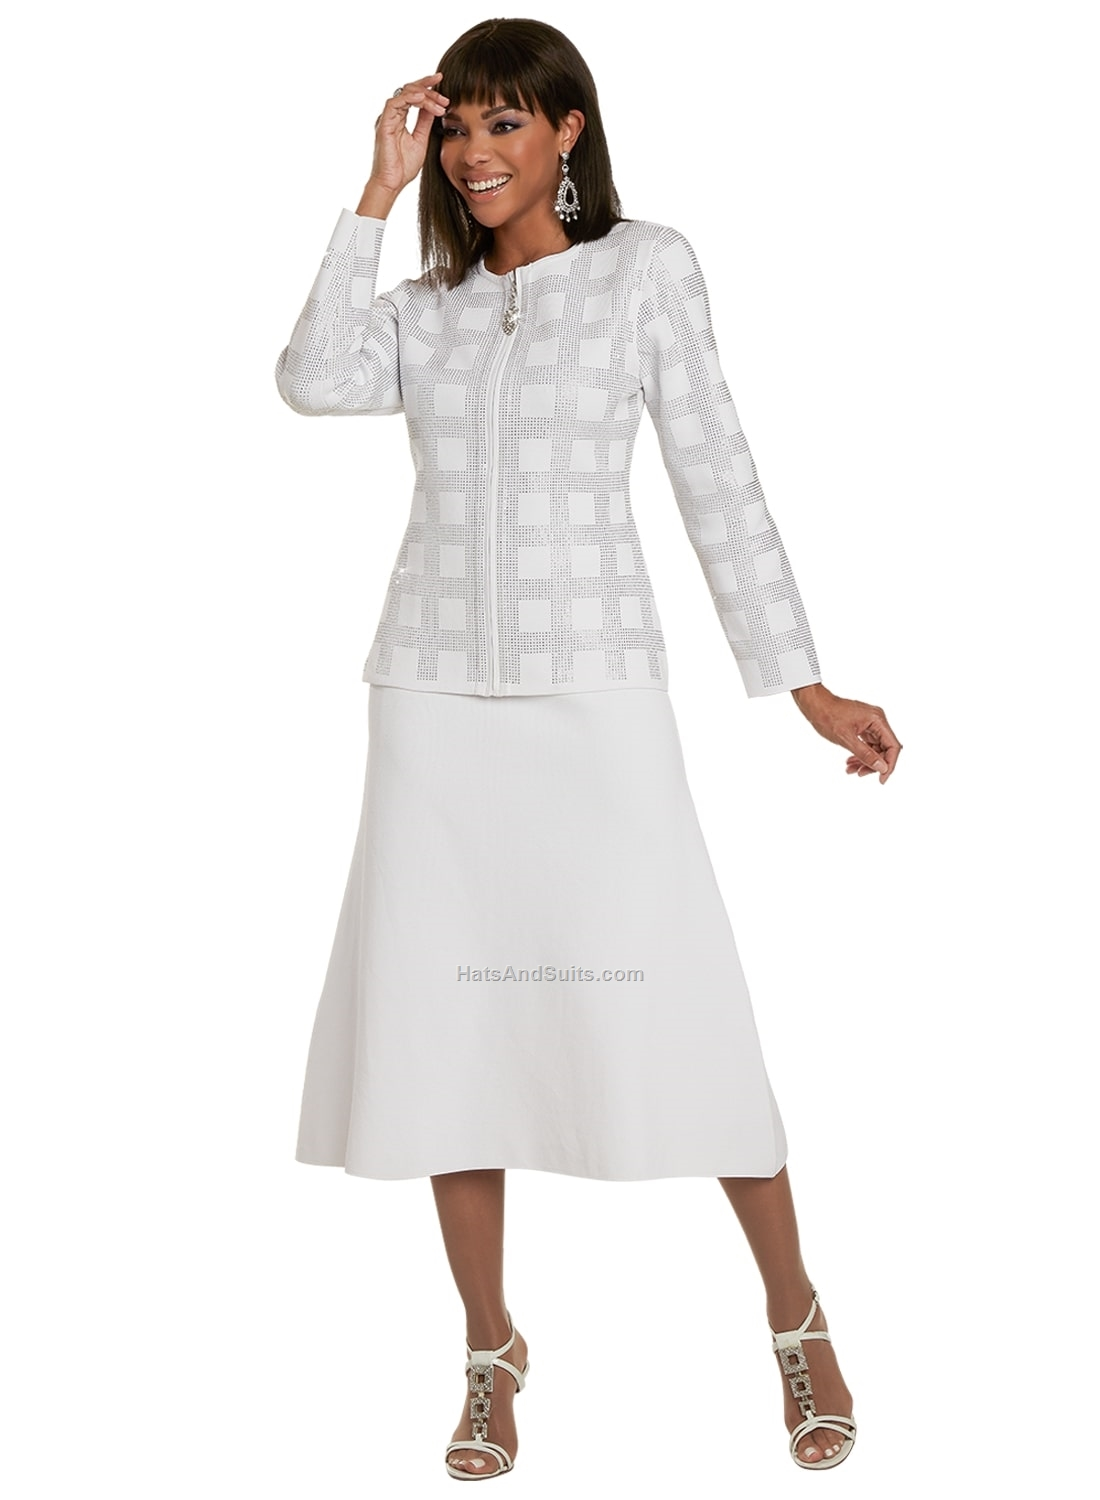 13306 Donna Vinci KNITS Women Suit, 2 Pc. Jacket & Skirt Set. SP21